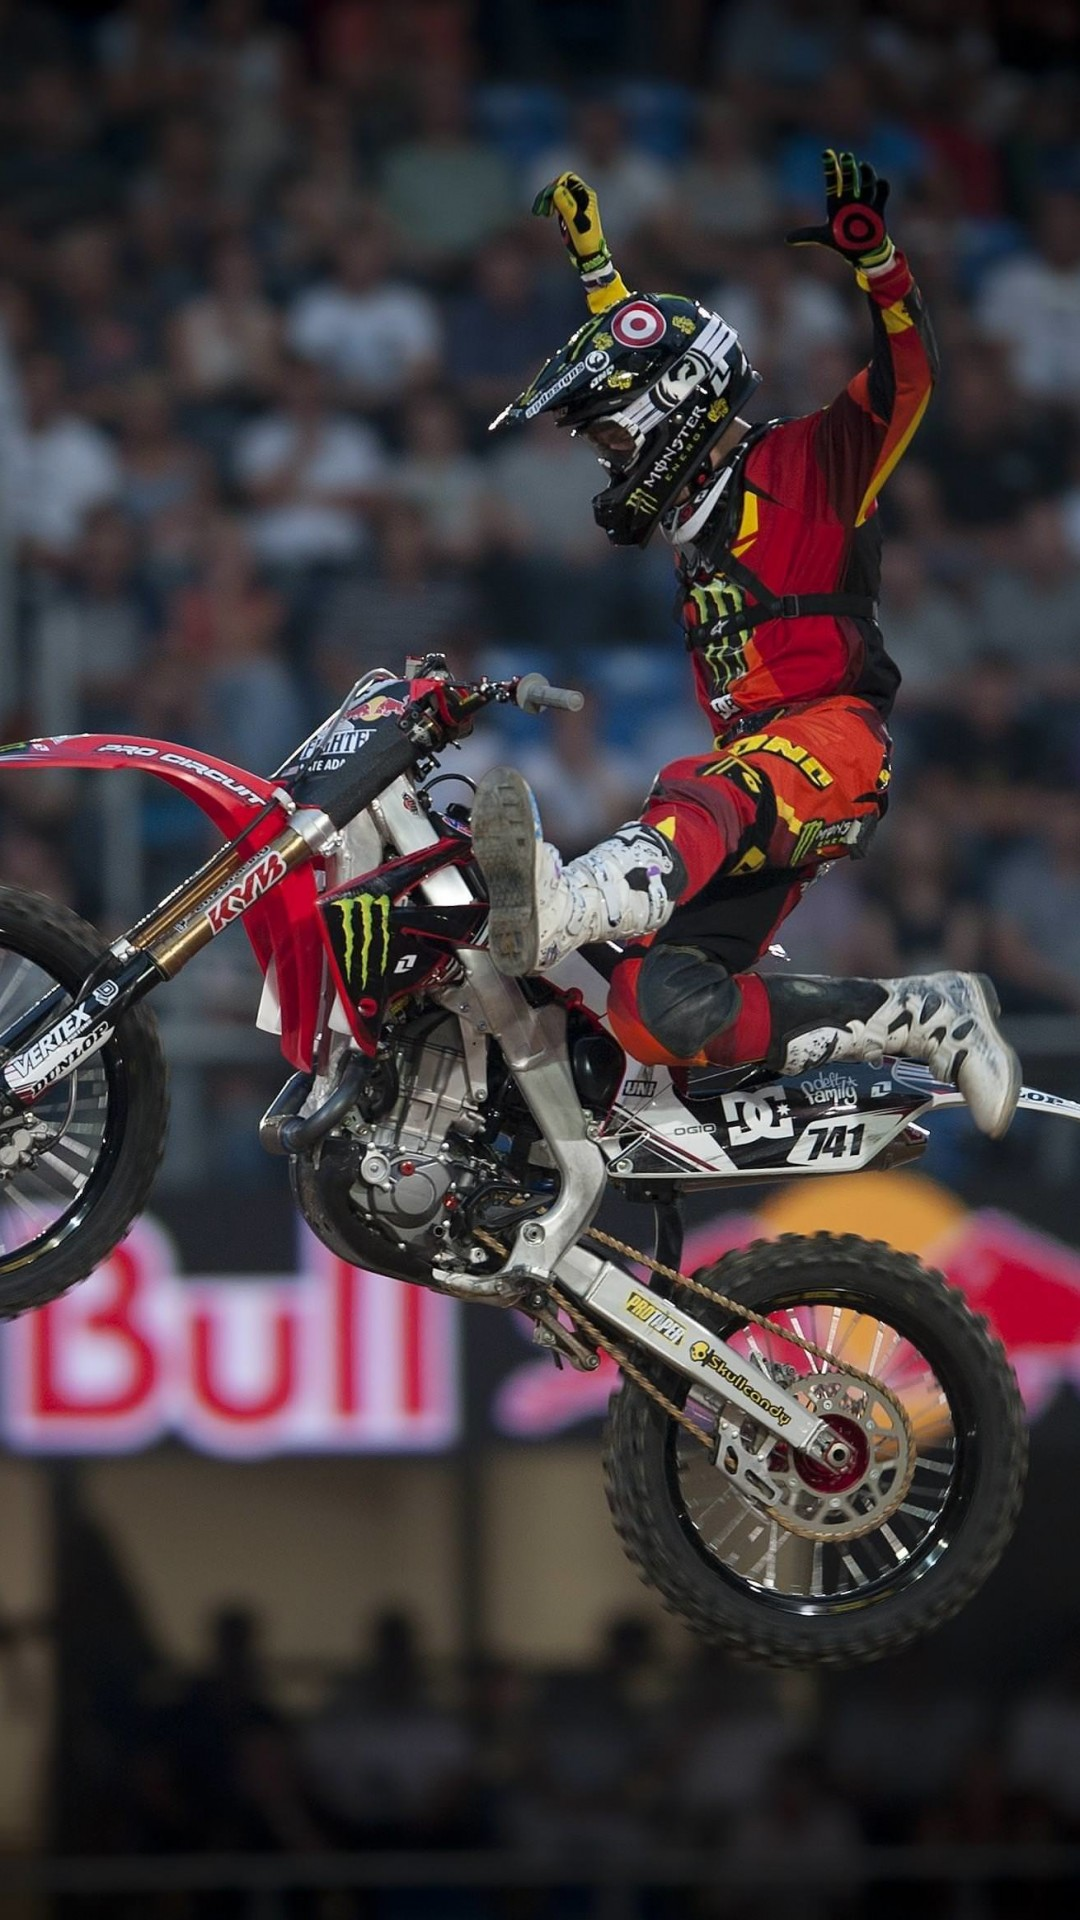 Nate Adams Wallpaper for Google Nexus 5X